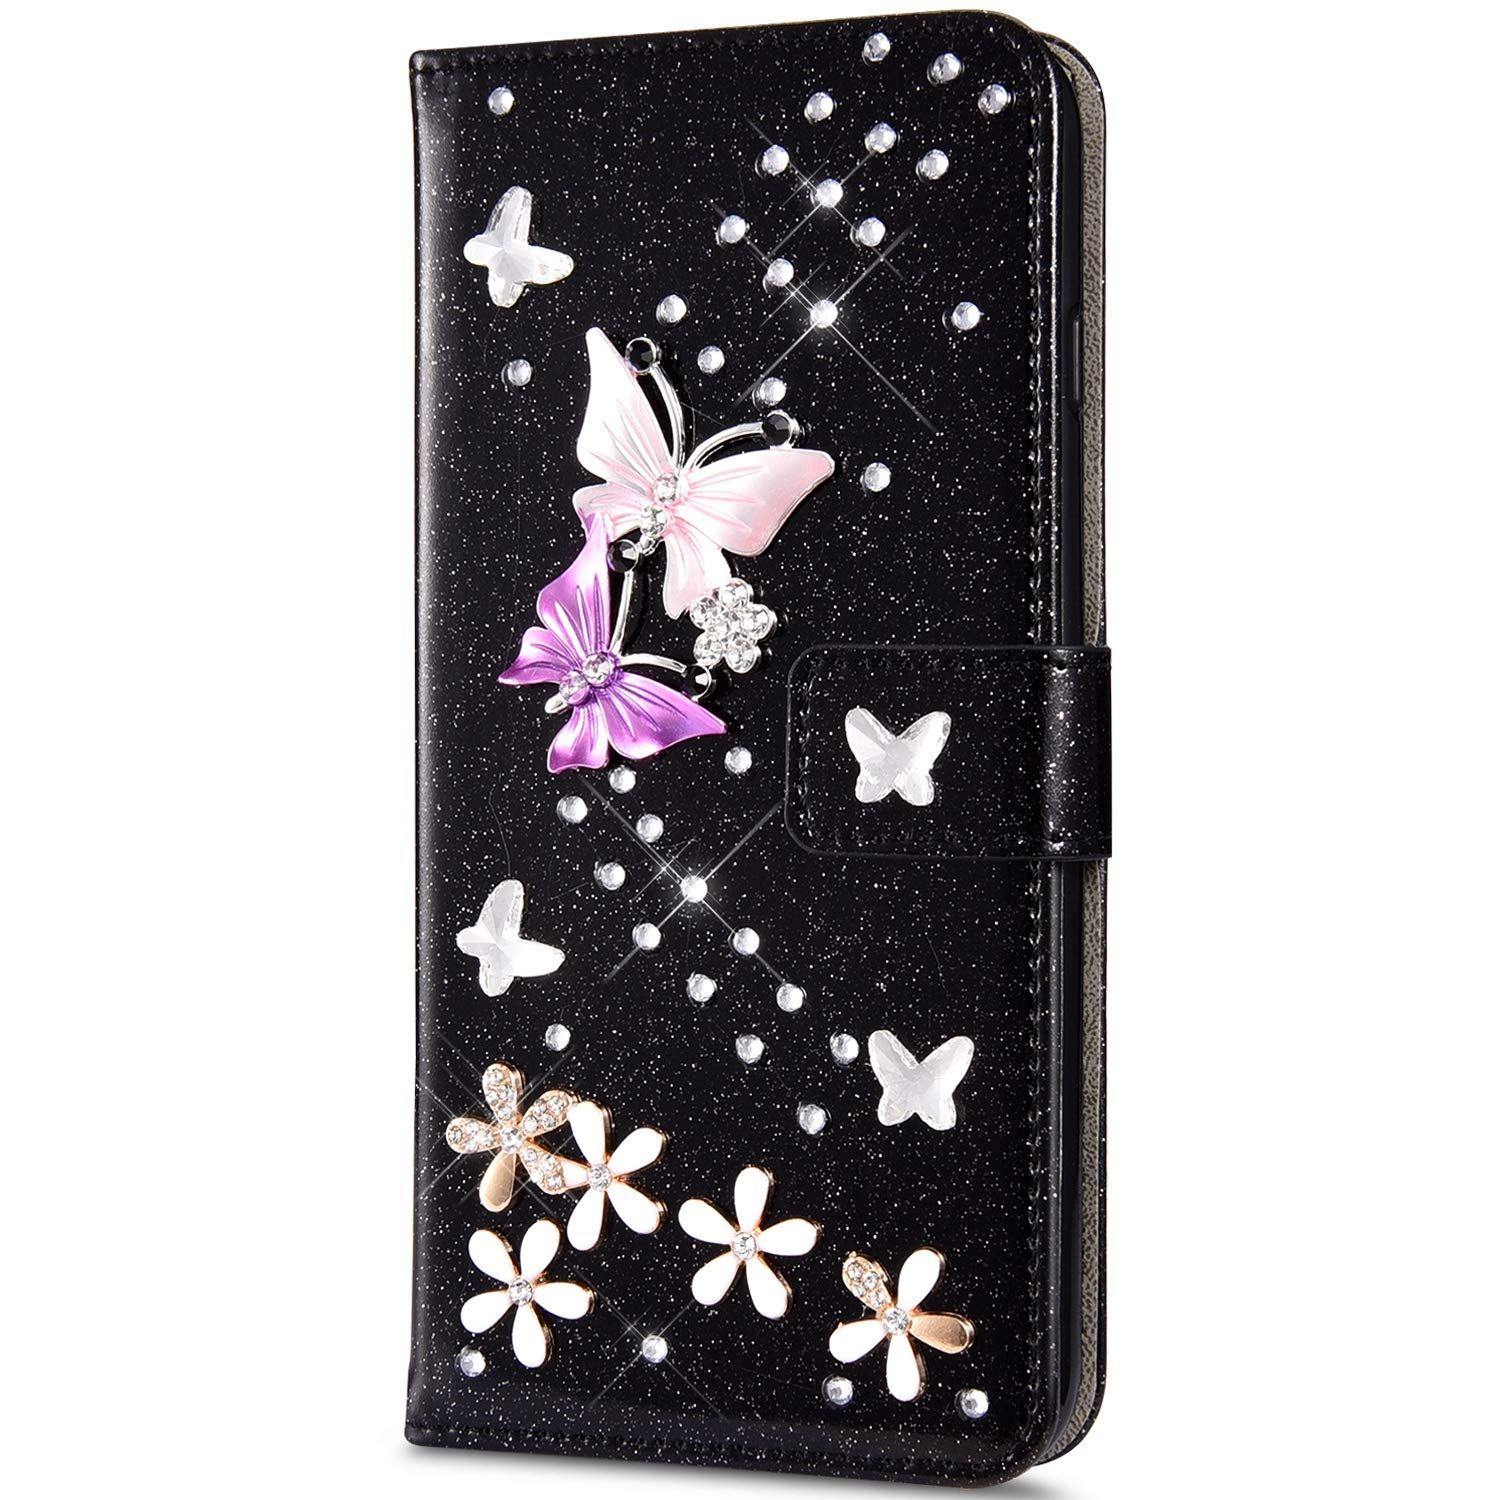 Case for iPhone 6//iPhone 6S Flip Case Premium PU Leather Wallet Case 3D Handmade Glitter Bling Shiny Diamond Butterfly with Card Slots Kickstand for iPhone 6//6S,Rose gold